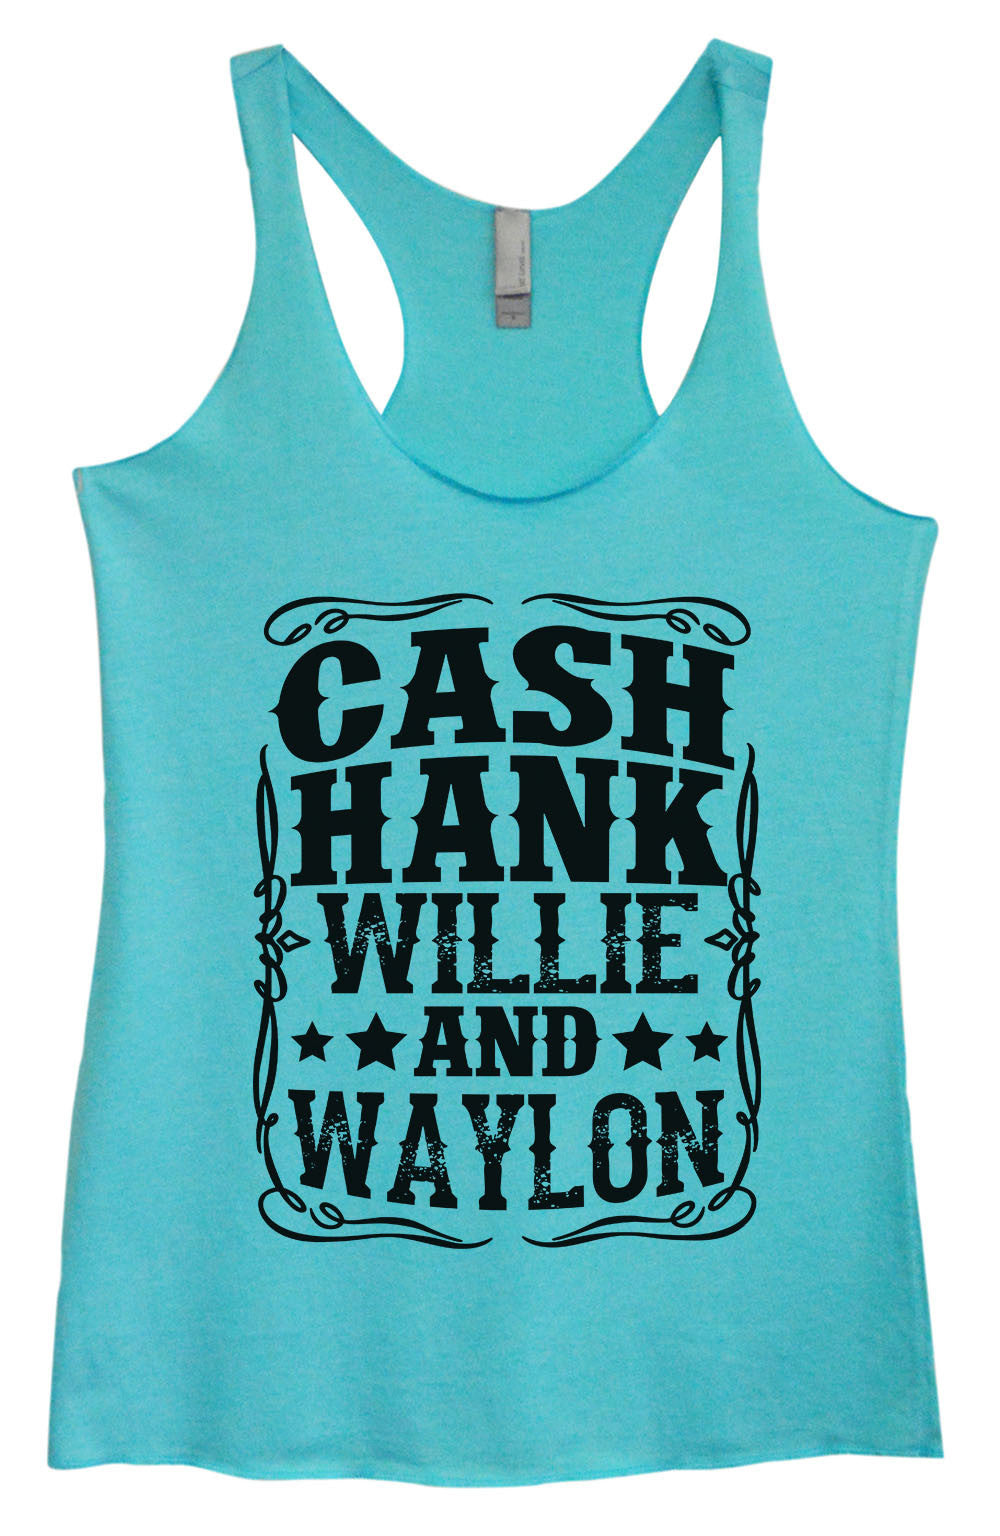 Womens Fashion Triblend Tank Top - Cash Hank Willie And Waylon - Tri-1571 - Funny Shirts Tank Tops Burnouts and Triblends  - 4